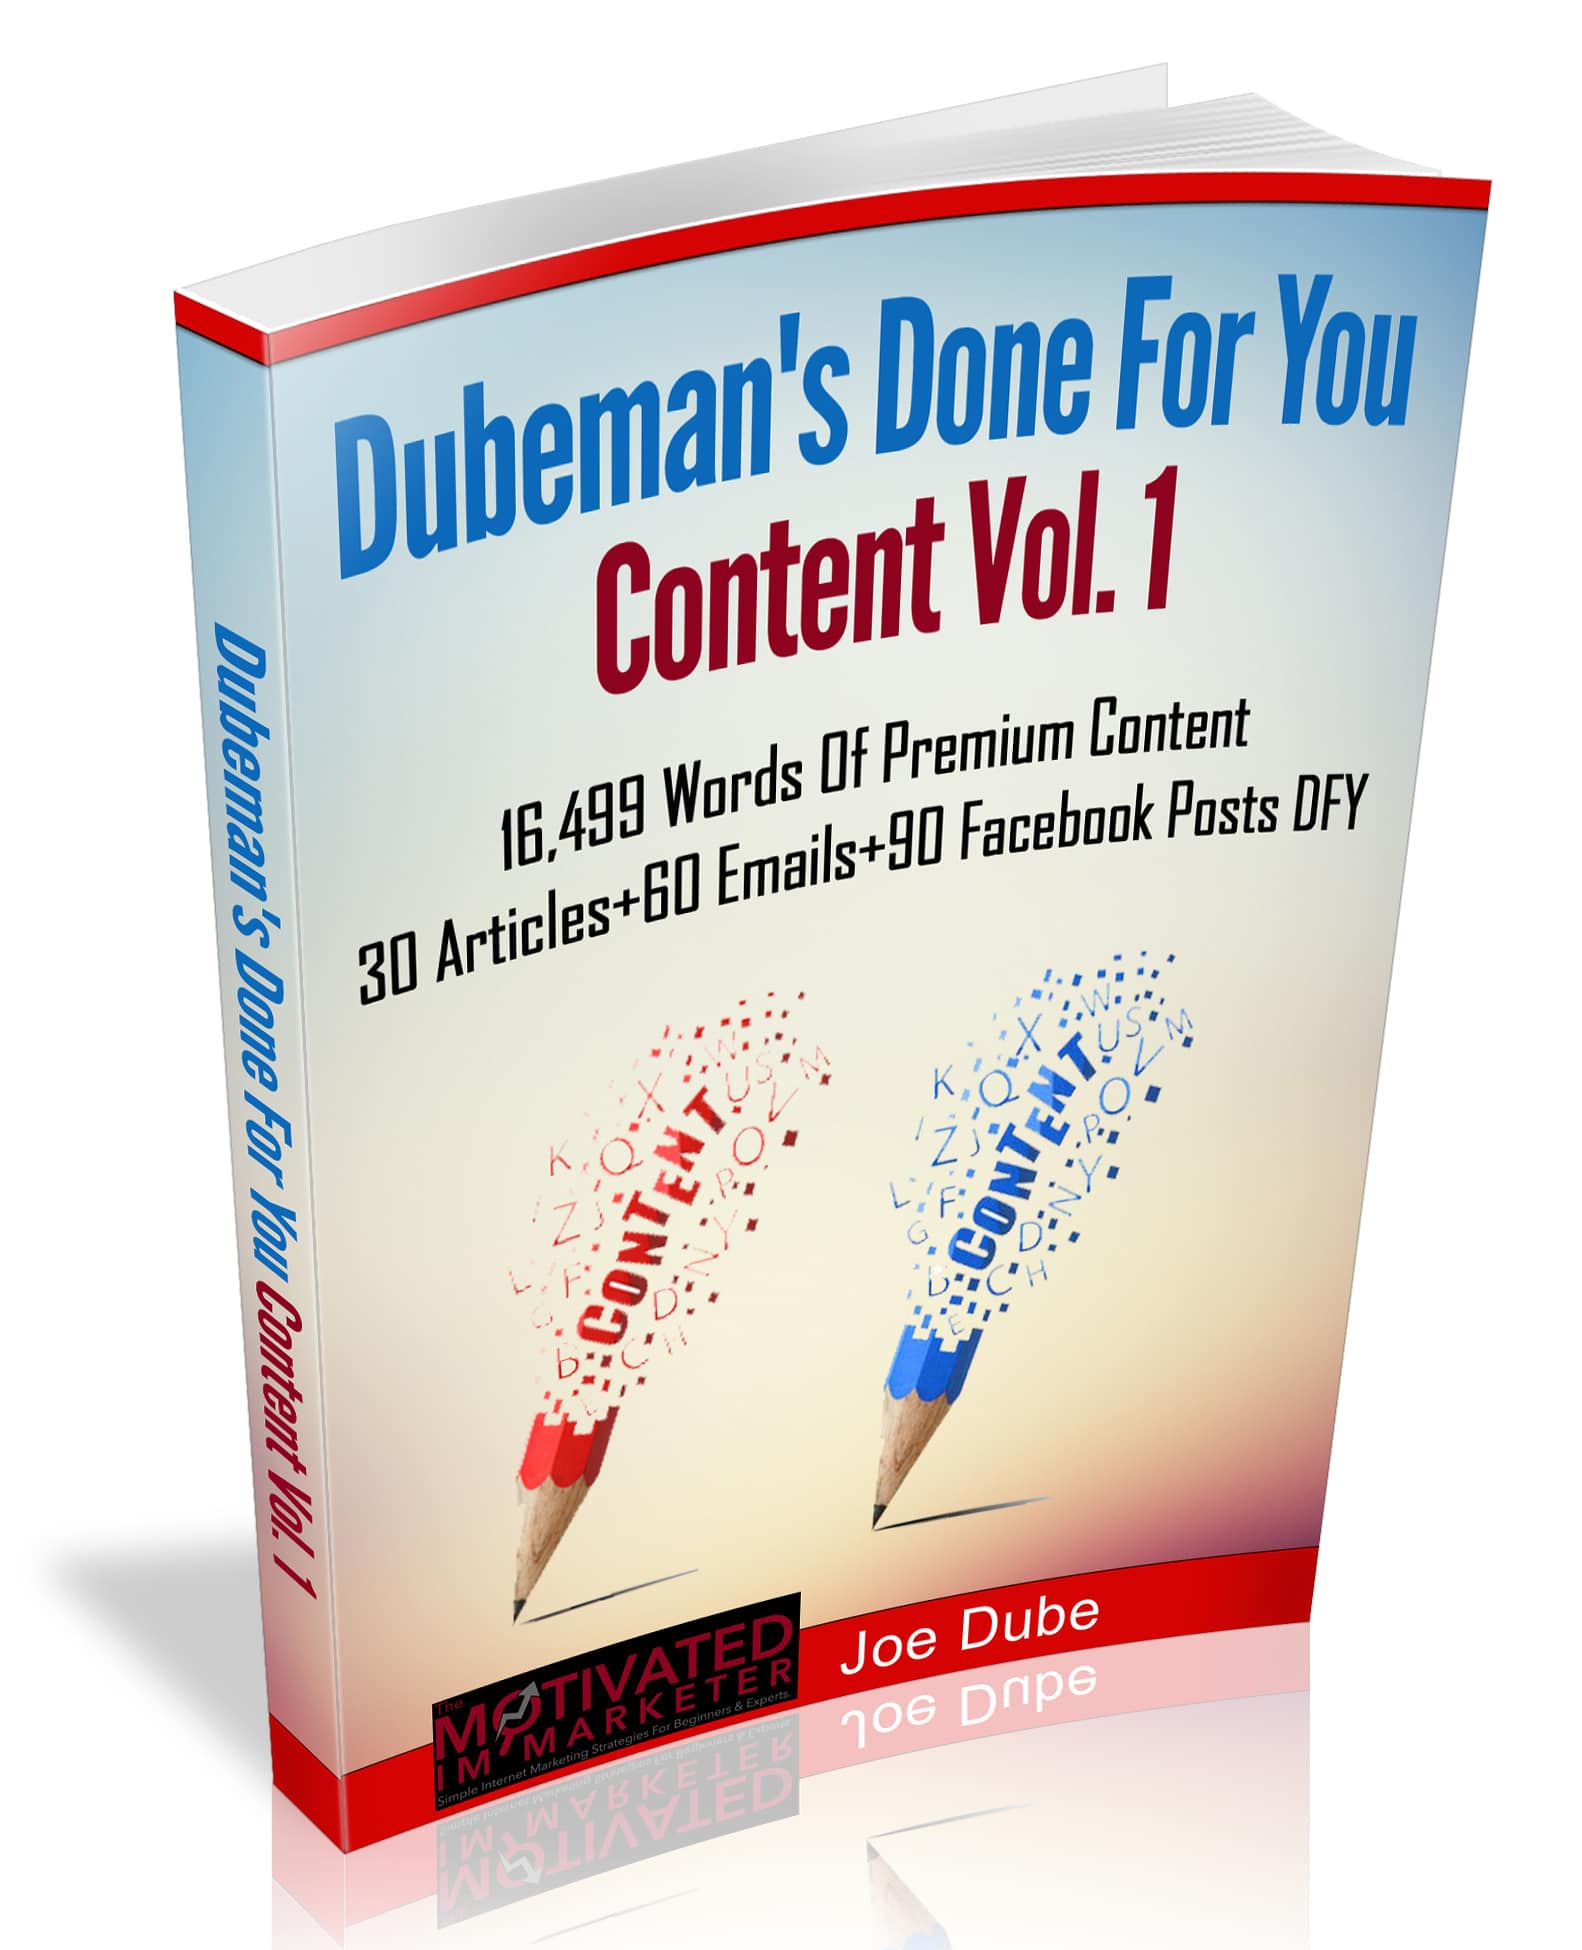 Dubemans Done For You Content Review